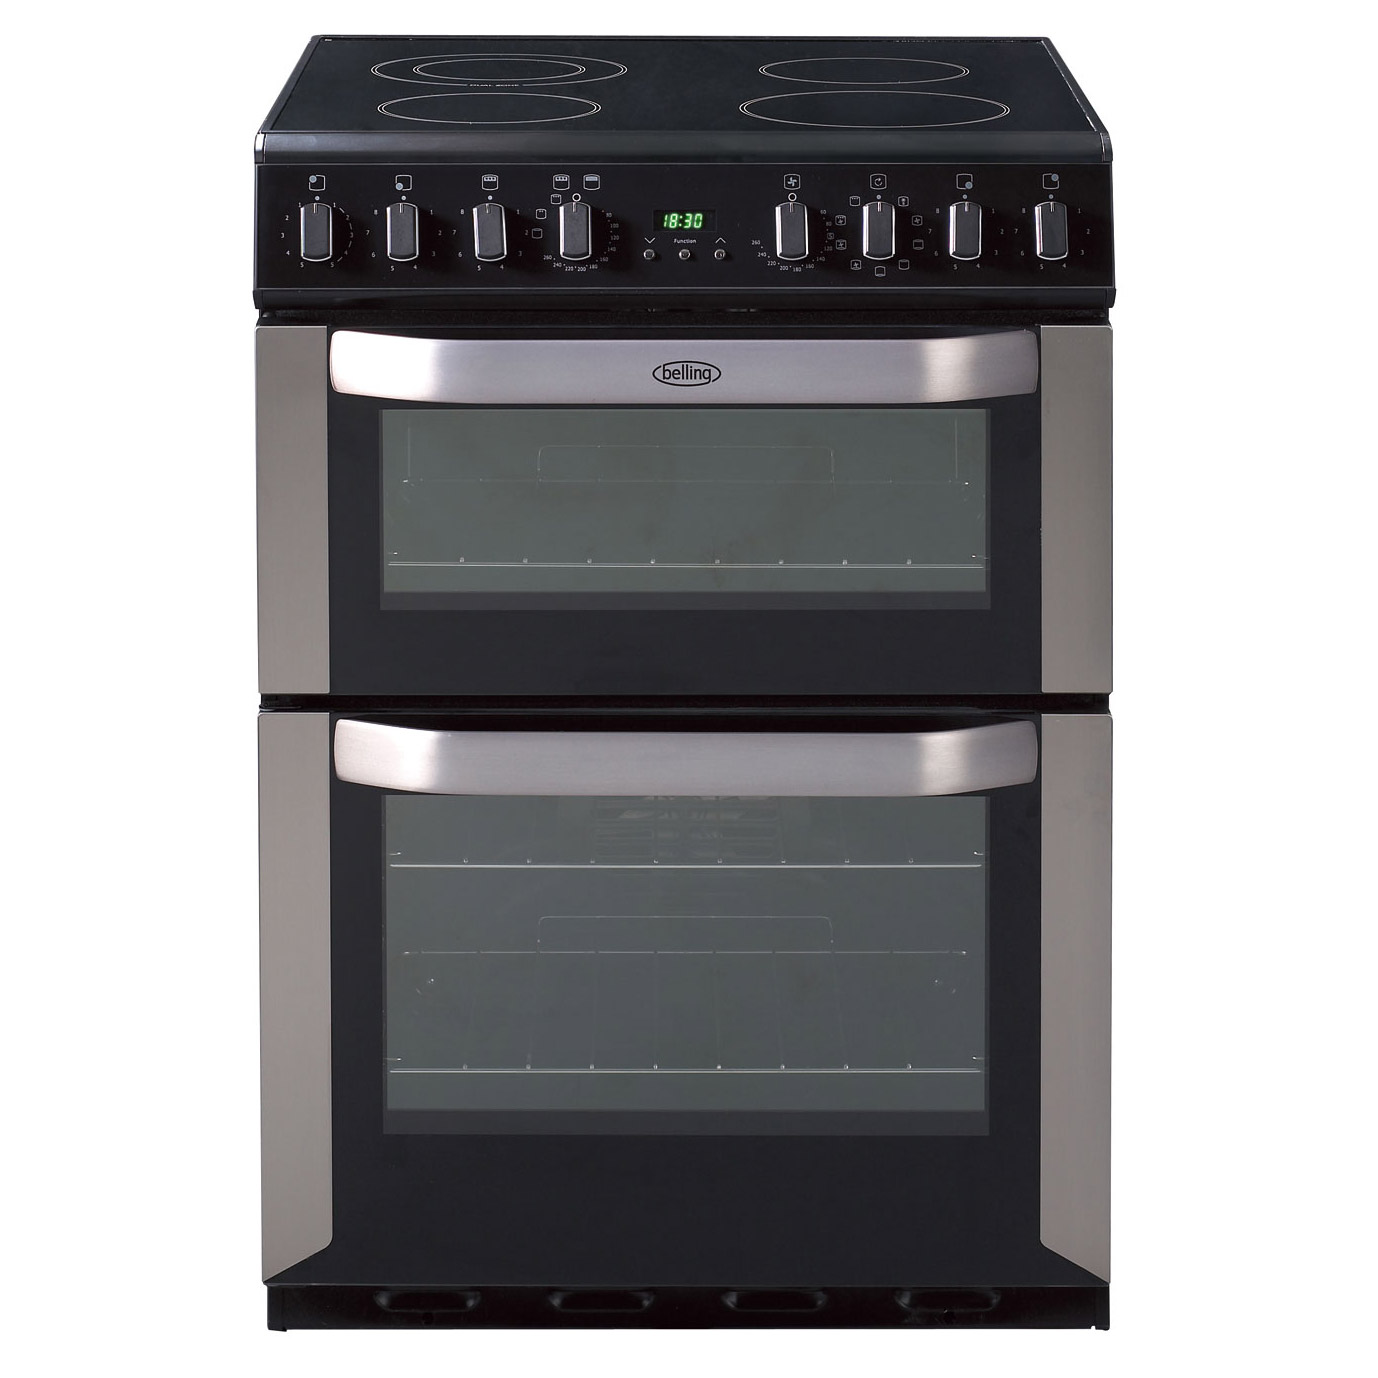 belling 444449575 60cm electric cooker in st st double oven ceramic hob rh sonicdirect co uk Belling Oven Parts belling oven installation manual